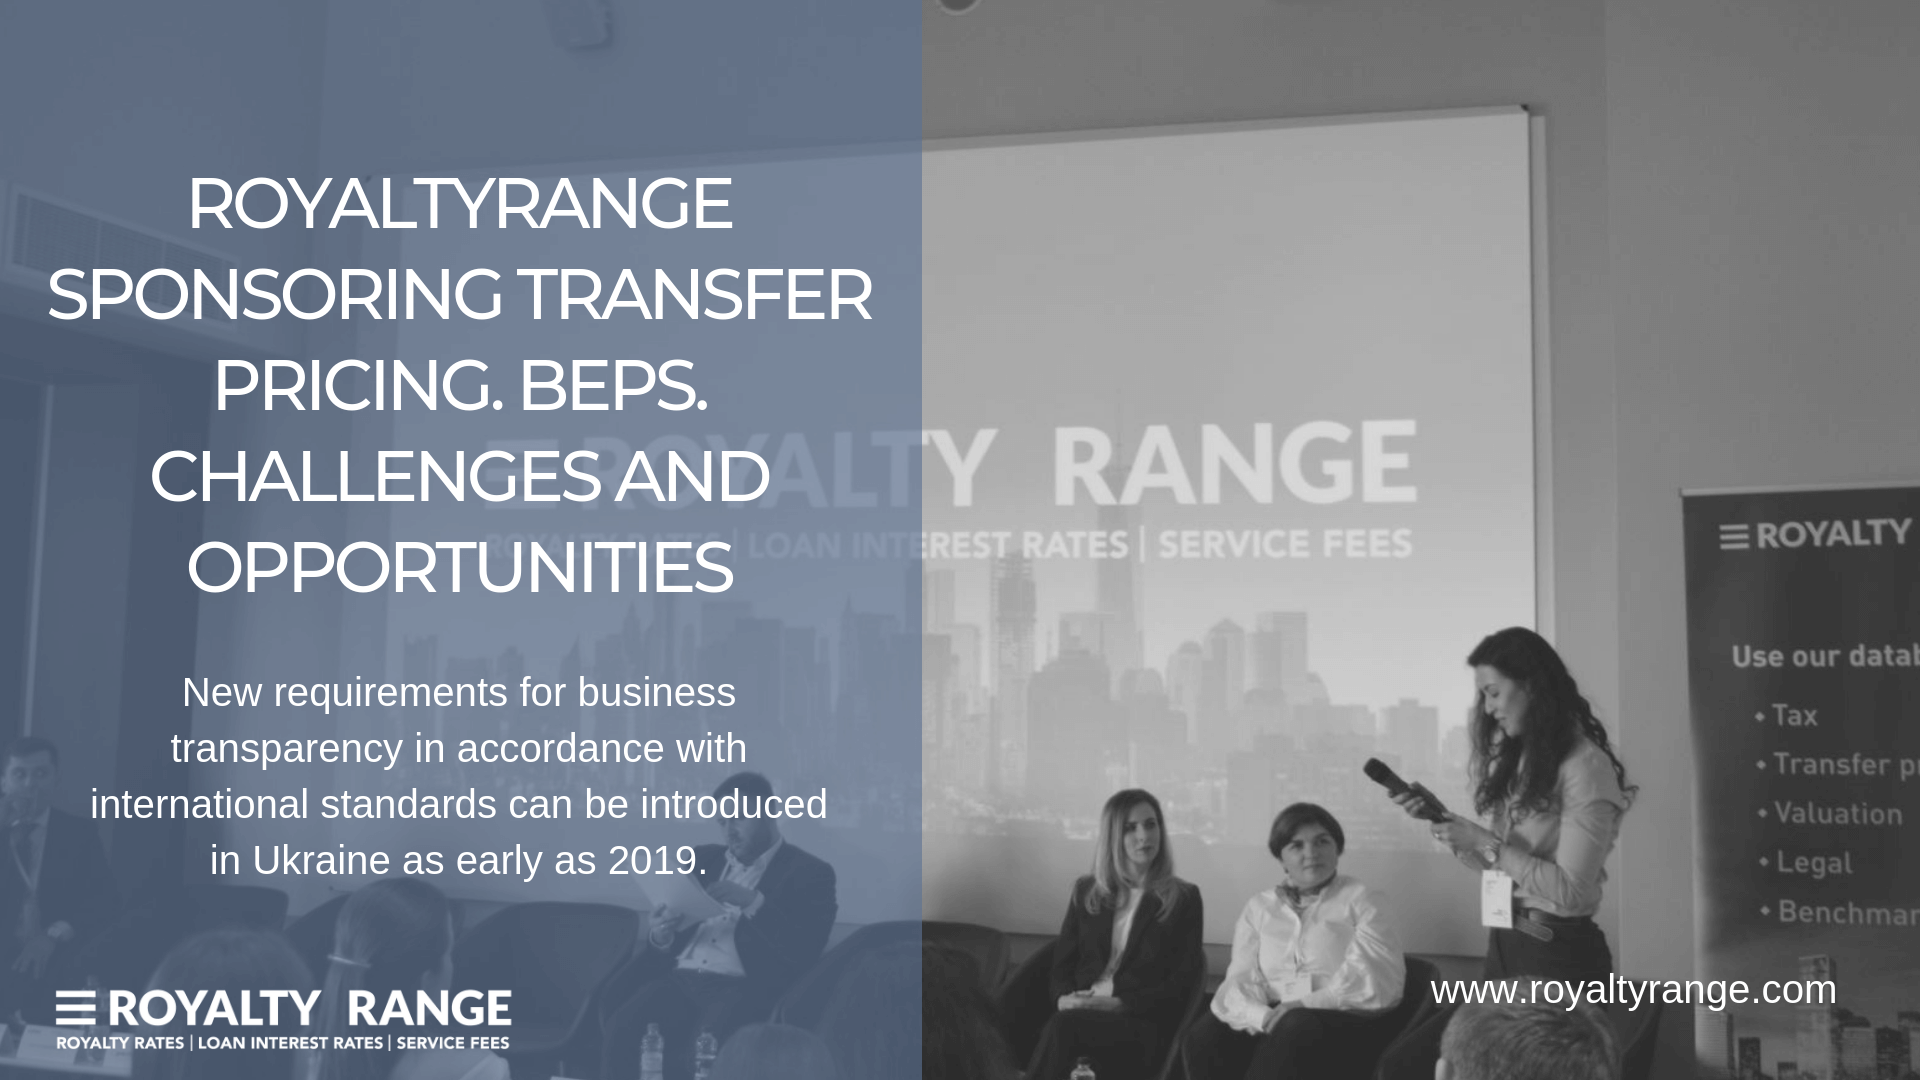 ROYALTYRANGE SPONSORING TRANSFER PRICING. BEPS. CHALLENGES AND OPPORTUNITIES